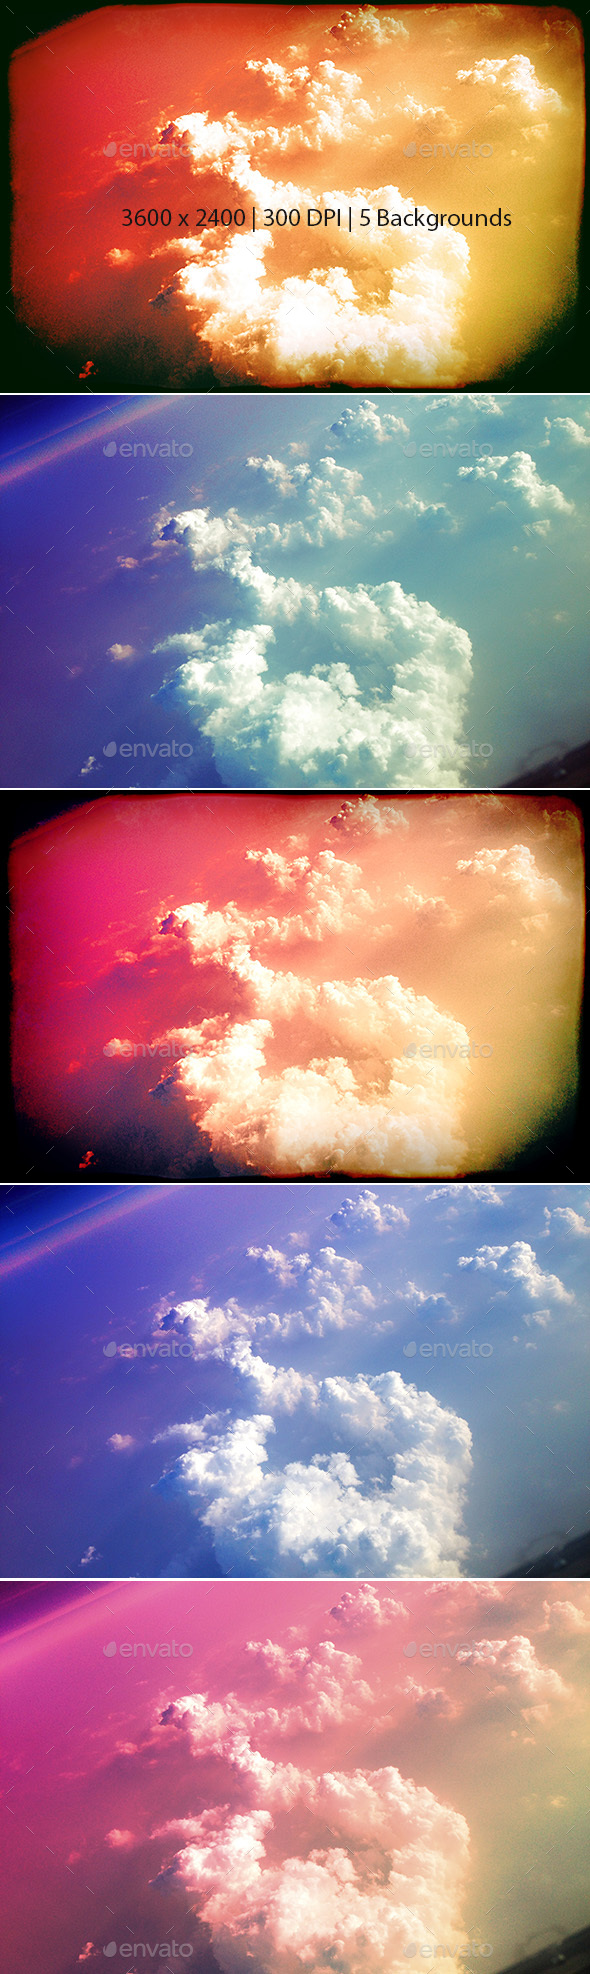 Colorful Sky Backgrounds  - Abstract Backgrounds